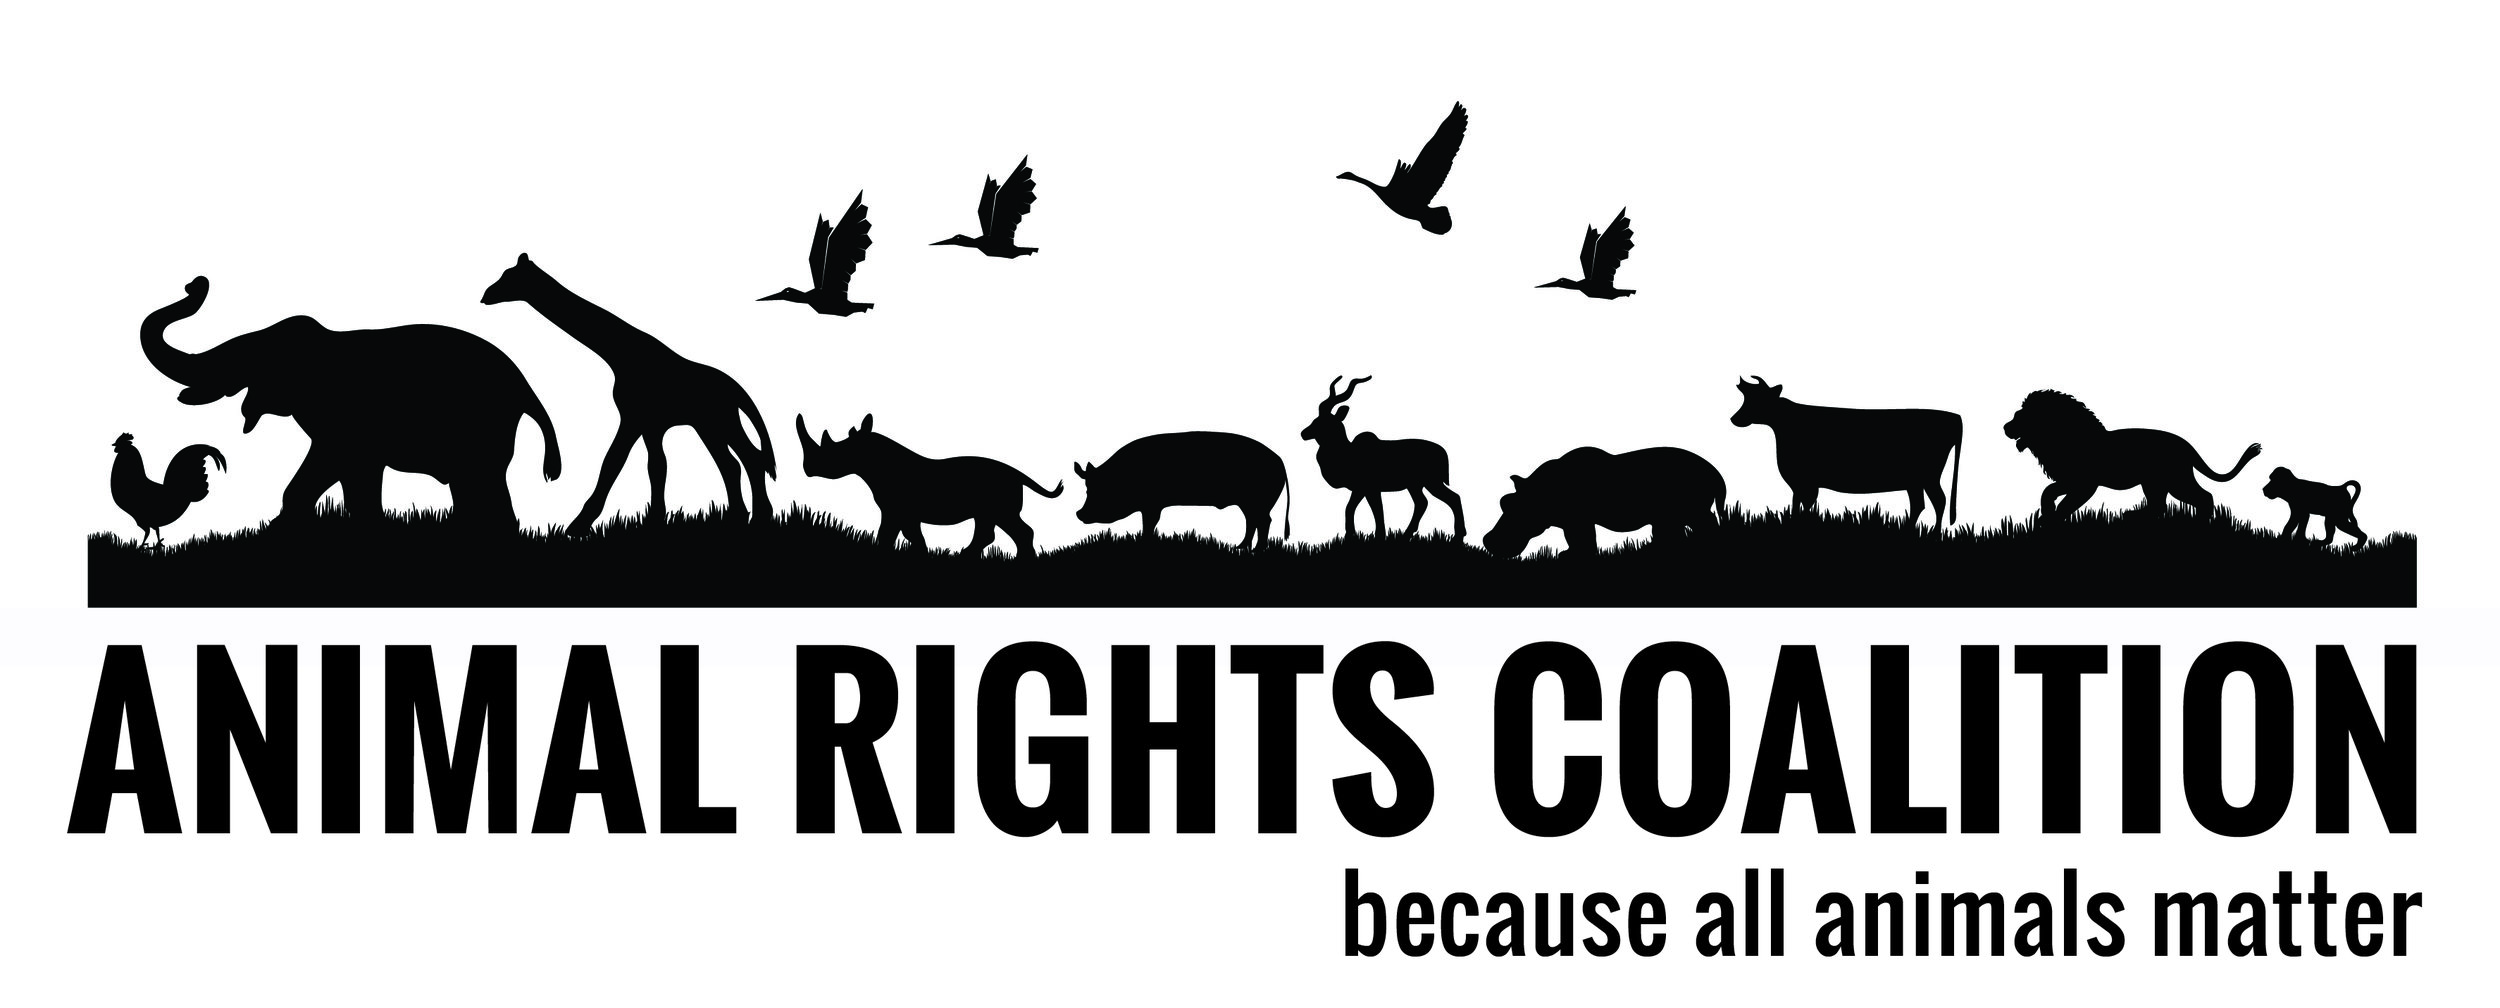 The Animal Rights Coalition works to end the suffering, abuse, and exploitation of non-human animals through information, education, and advocacy.